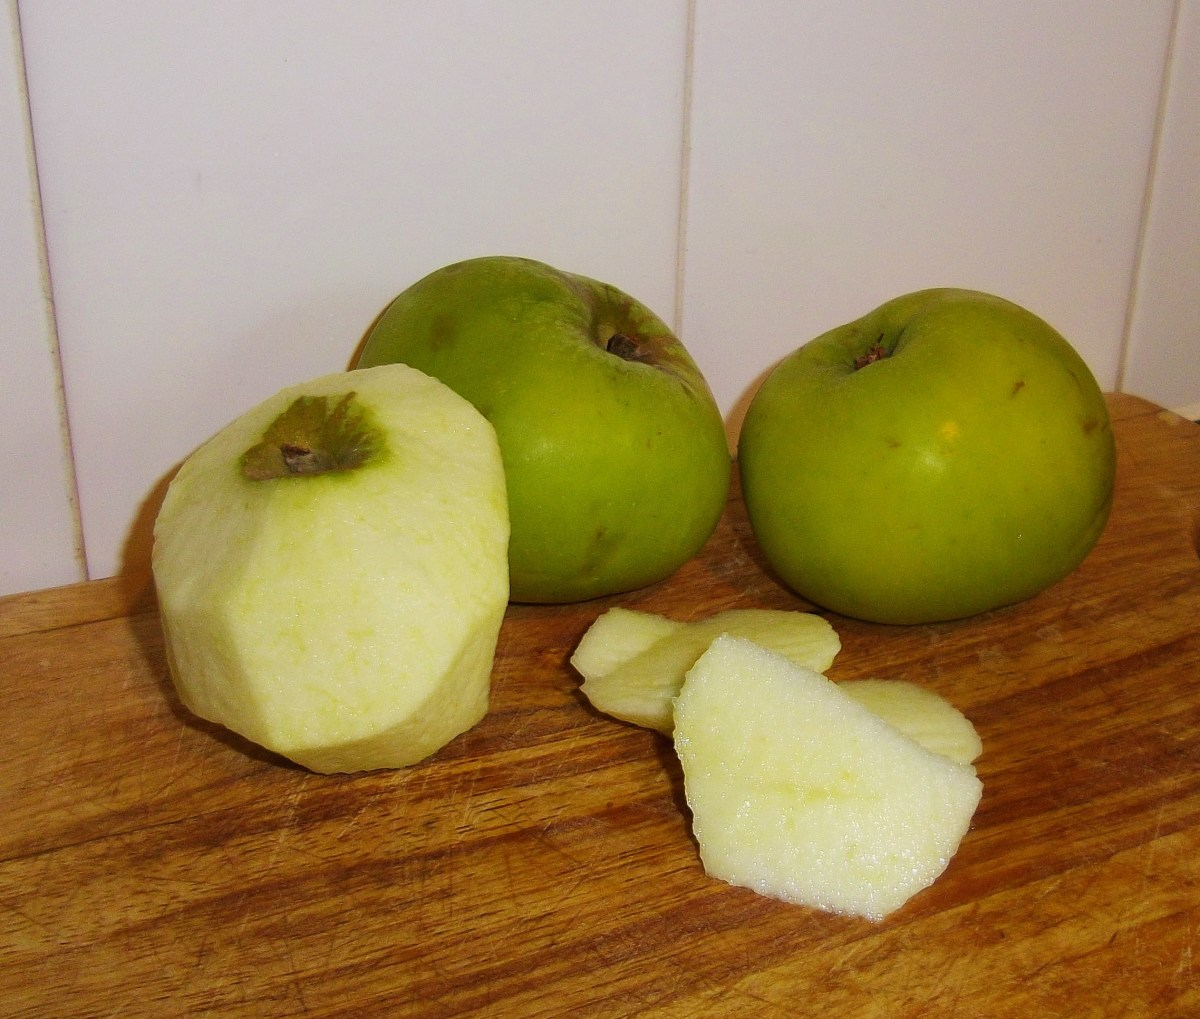 Bramley cooking apples.